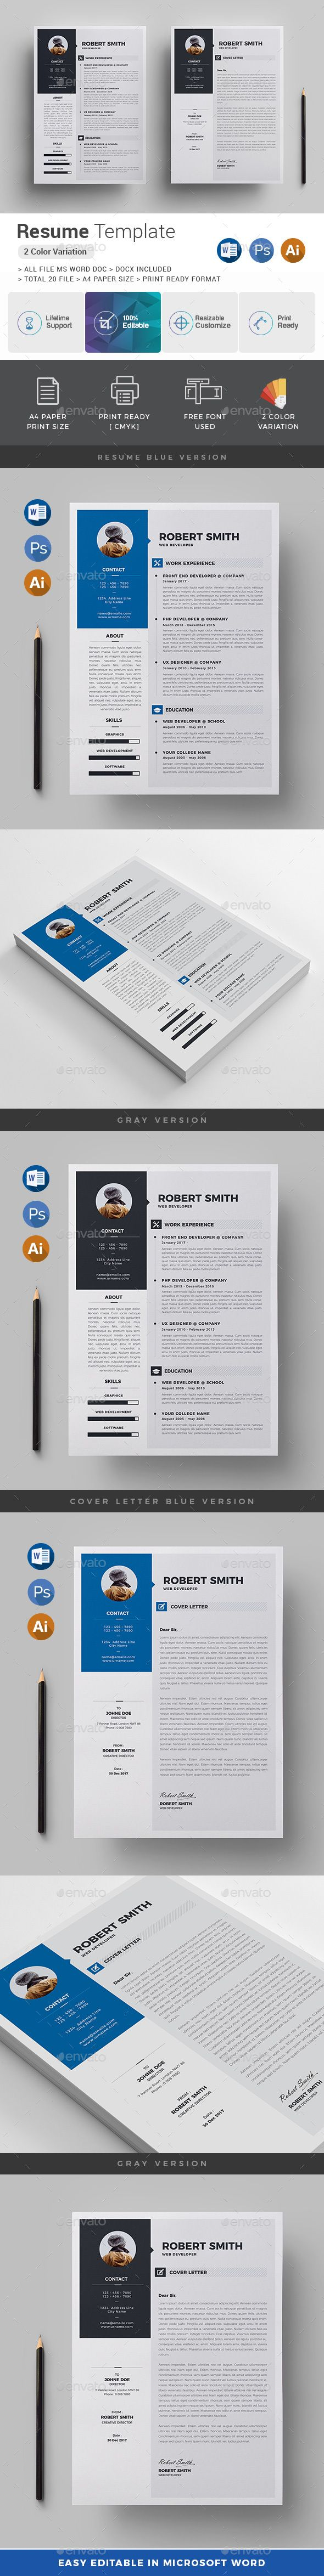 Resume 261 best CV images on Pinterest